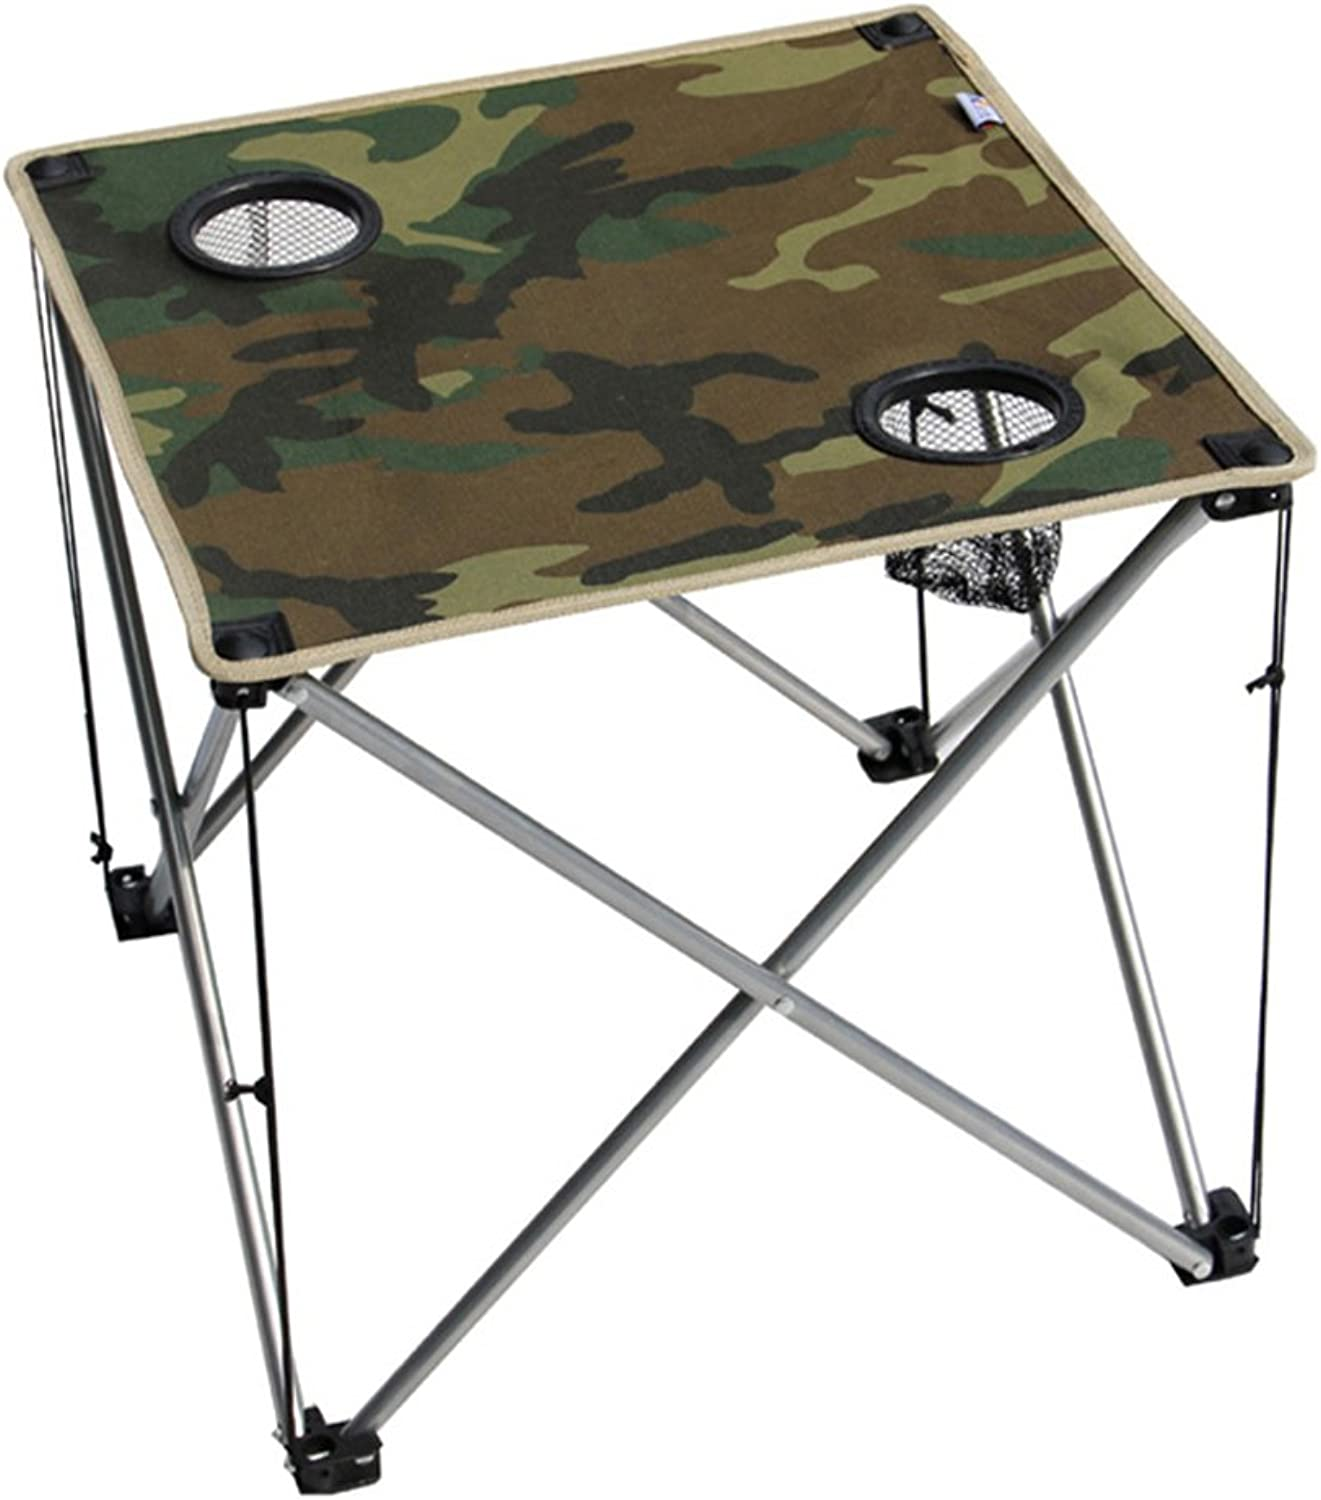 Folding Camping Table with Cup Holder, Portable Table for Fishing Hiking Gardening and Beach, Seat with Bag